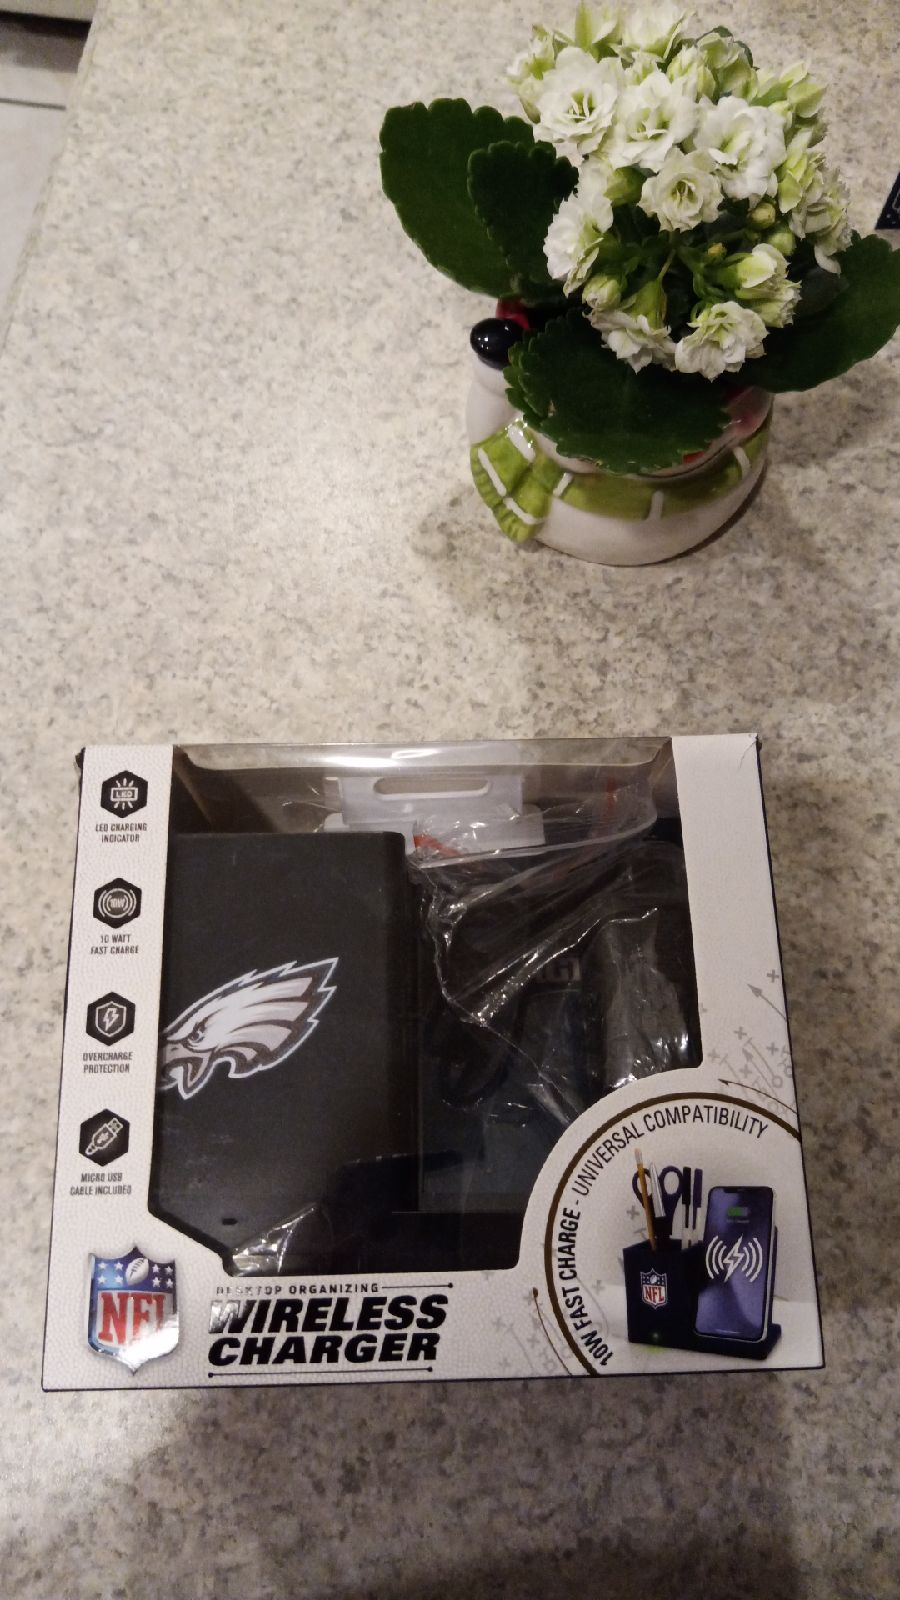 Official NFL wireless charger and deskto